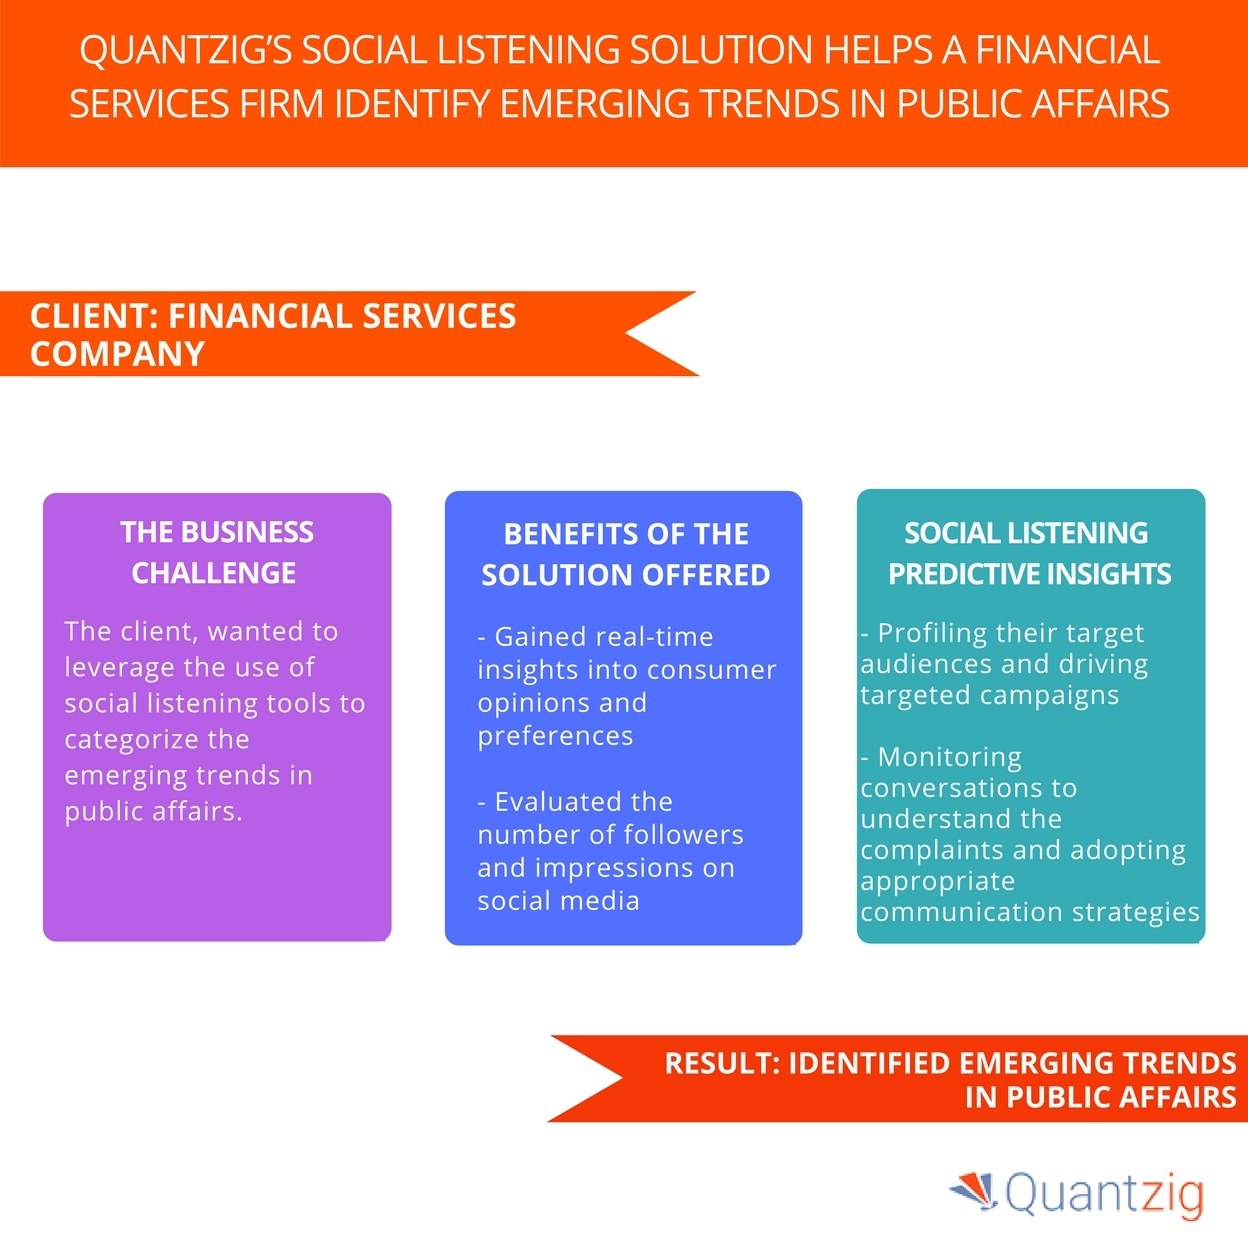 financial services industry players can now identify emerging trends